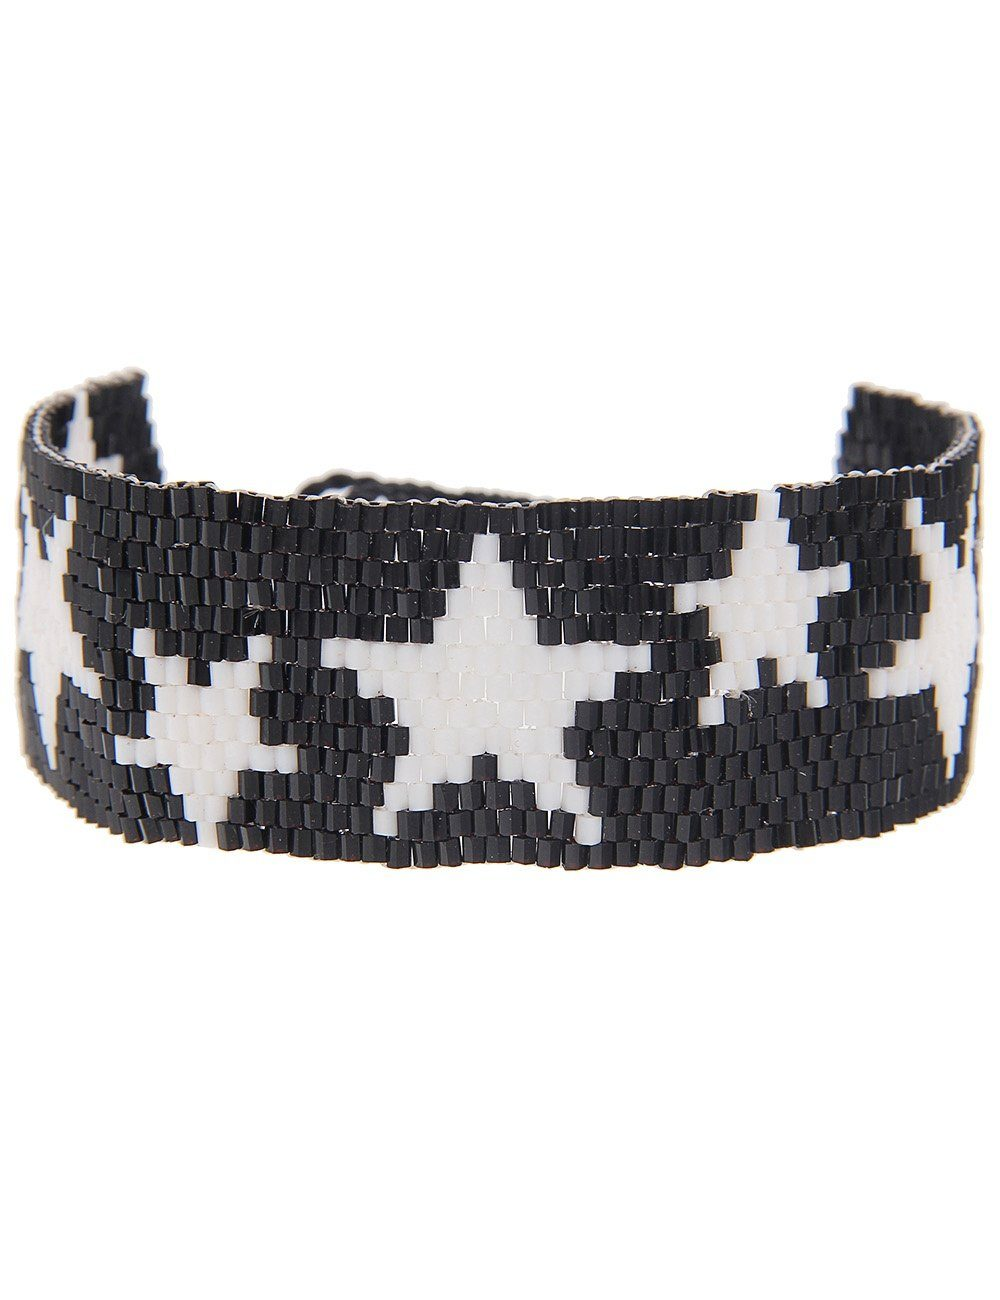 Leslii Armband mit Stern-Muster